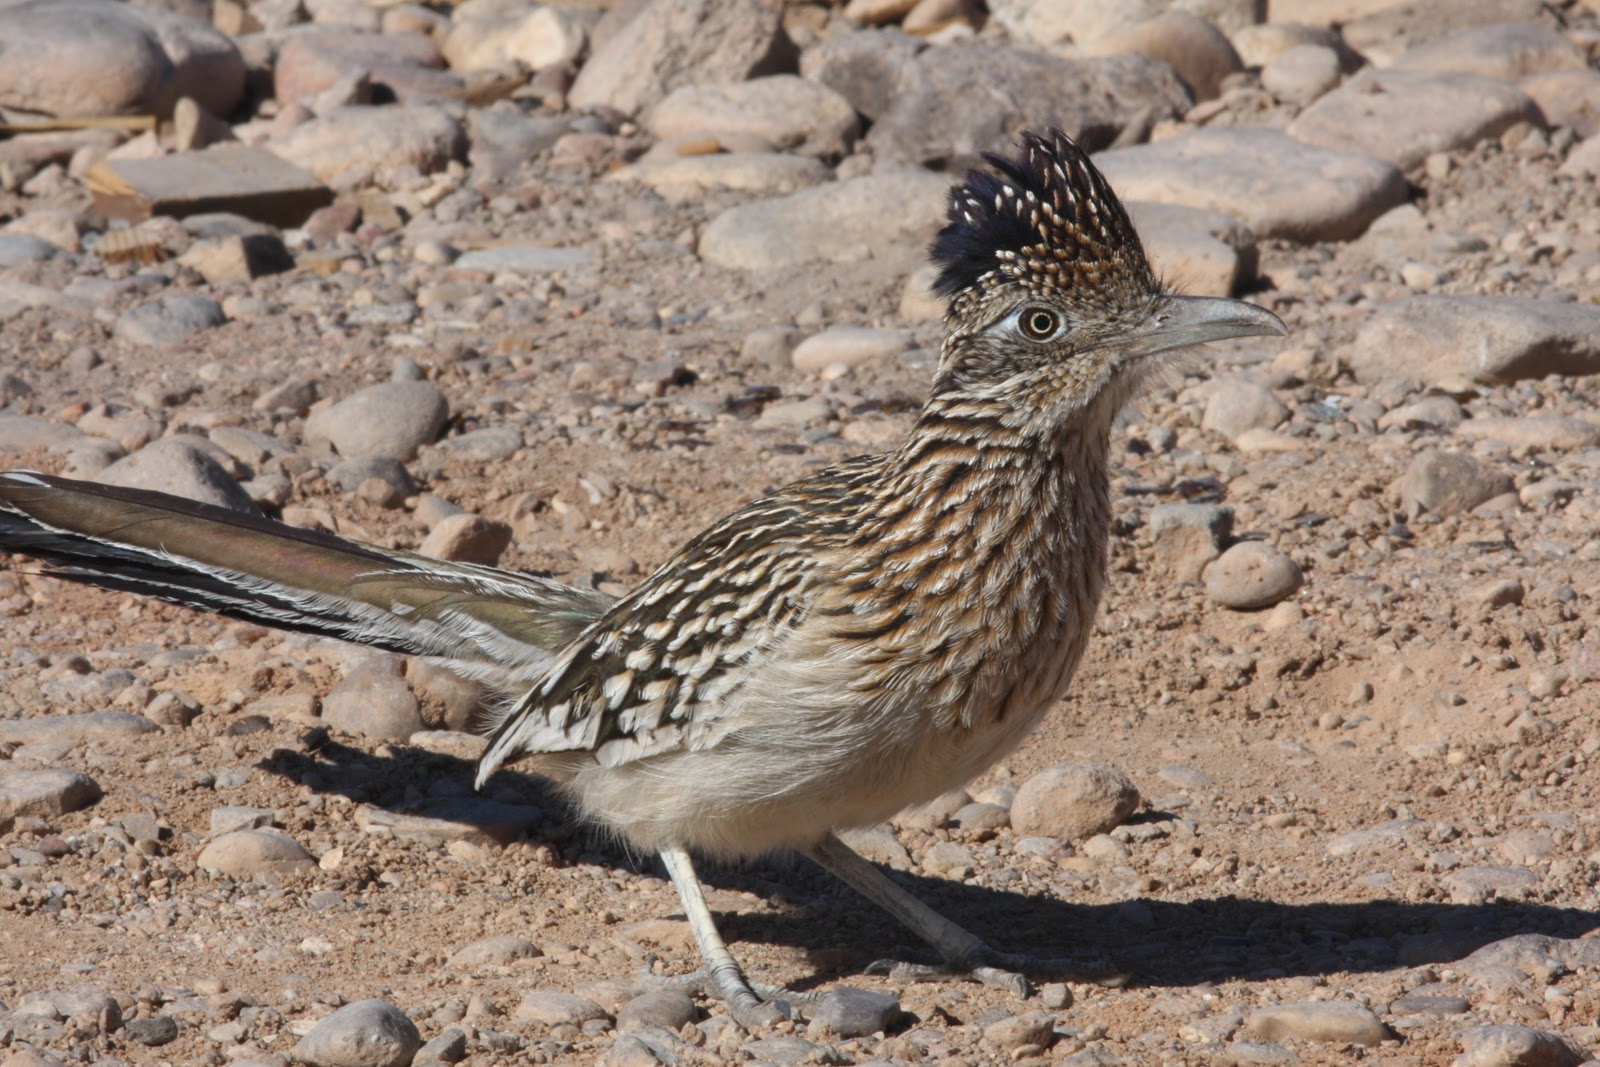 Yesterday, I had an opportunity to photograph a favorite desert bird ...